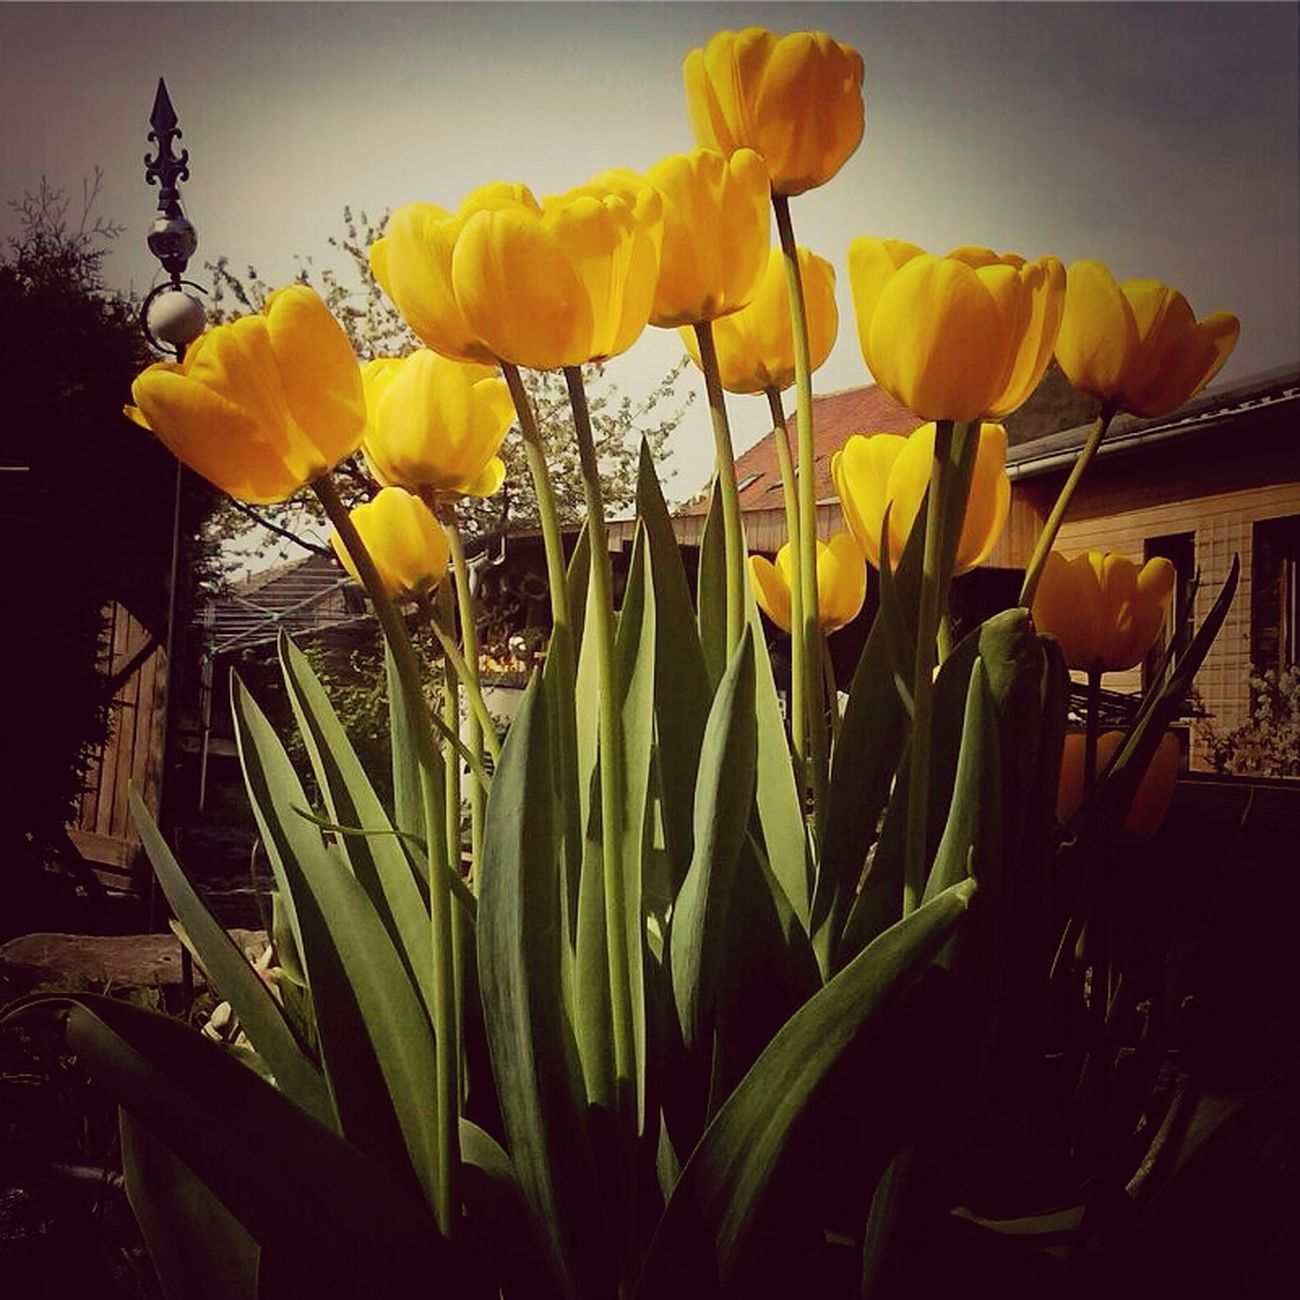 Sun and Flowers.. Spring is awesome :)